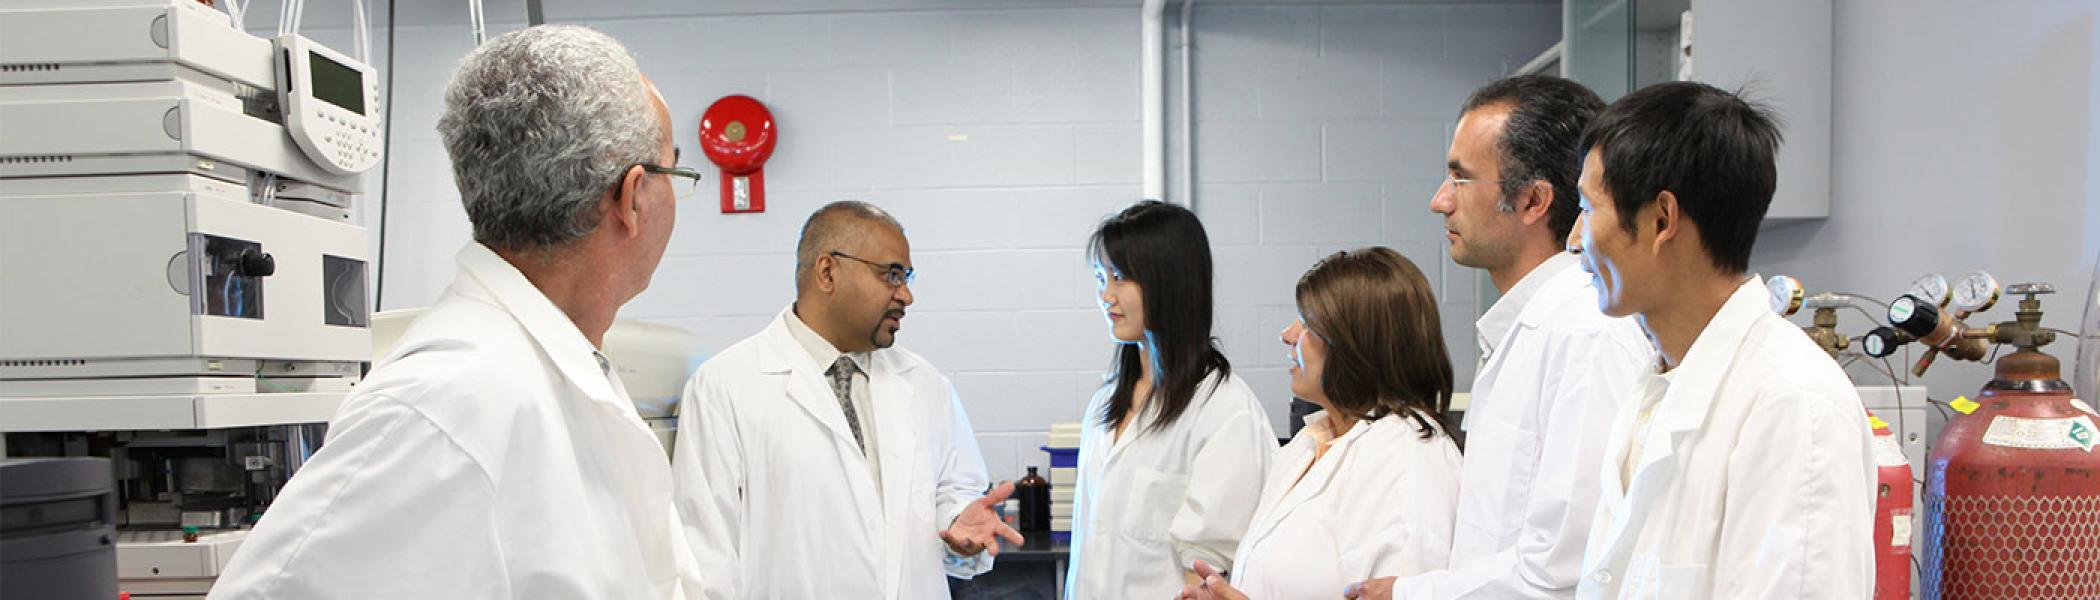 The Biomaterials Research team discussing their work in the lab.